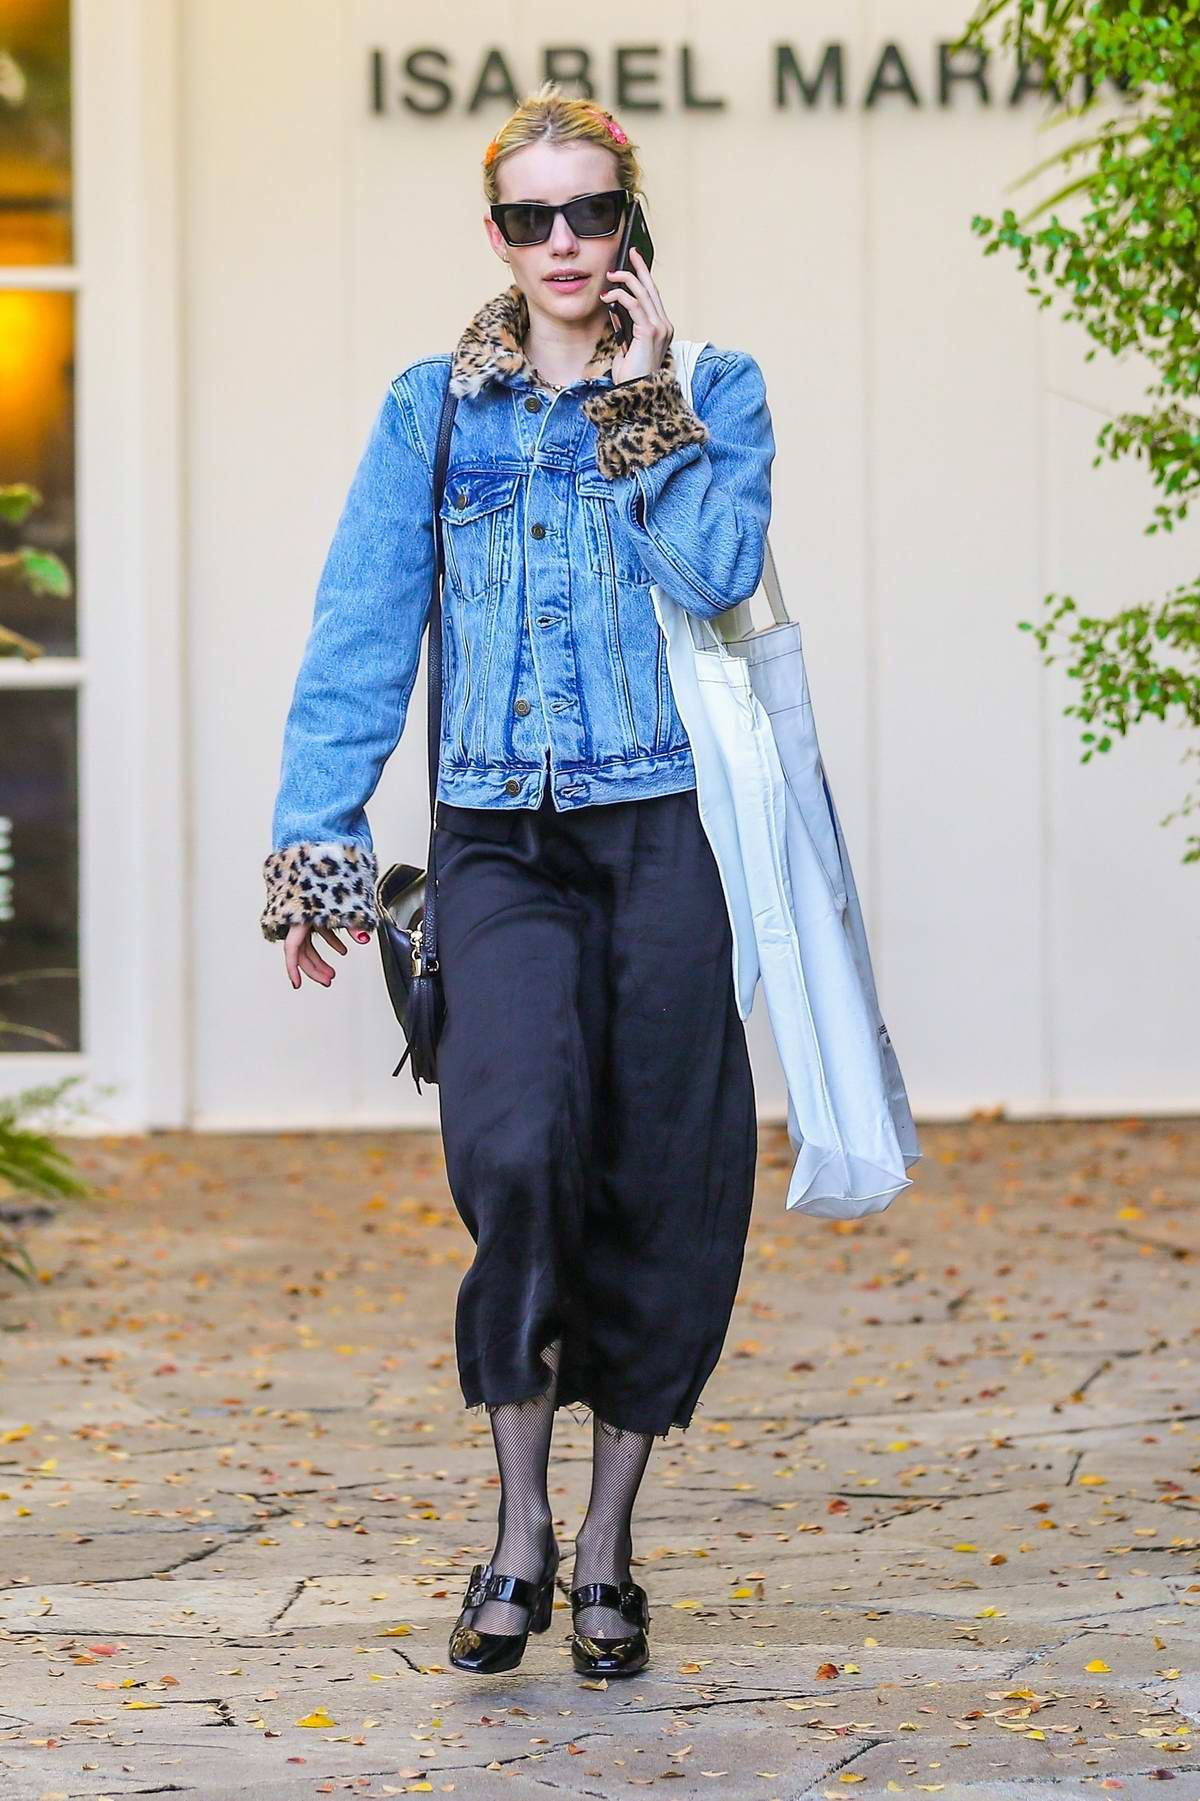 Emma Roberts looks stylish in a denim jacket while shopping on Melrose Place in Beverly Hills, California